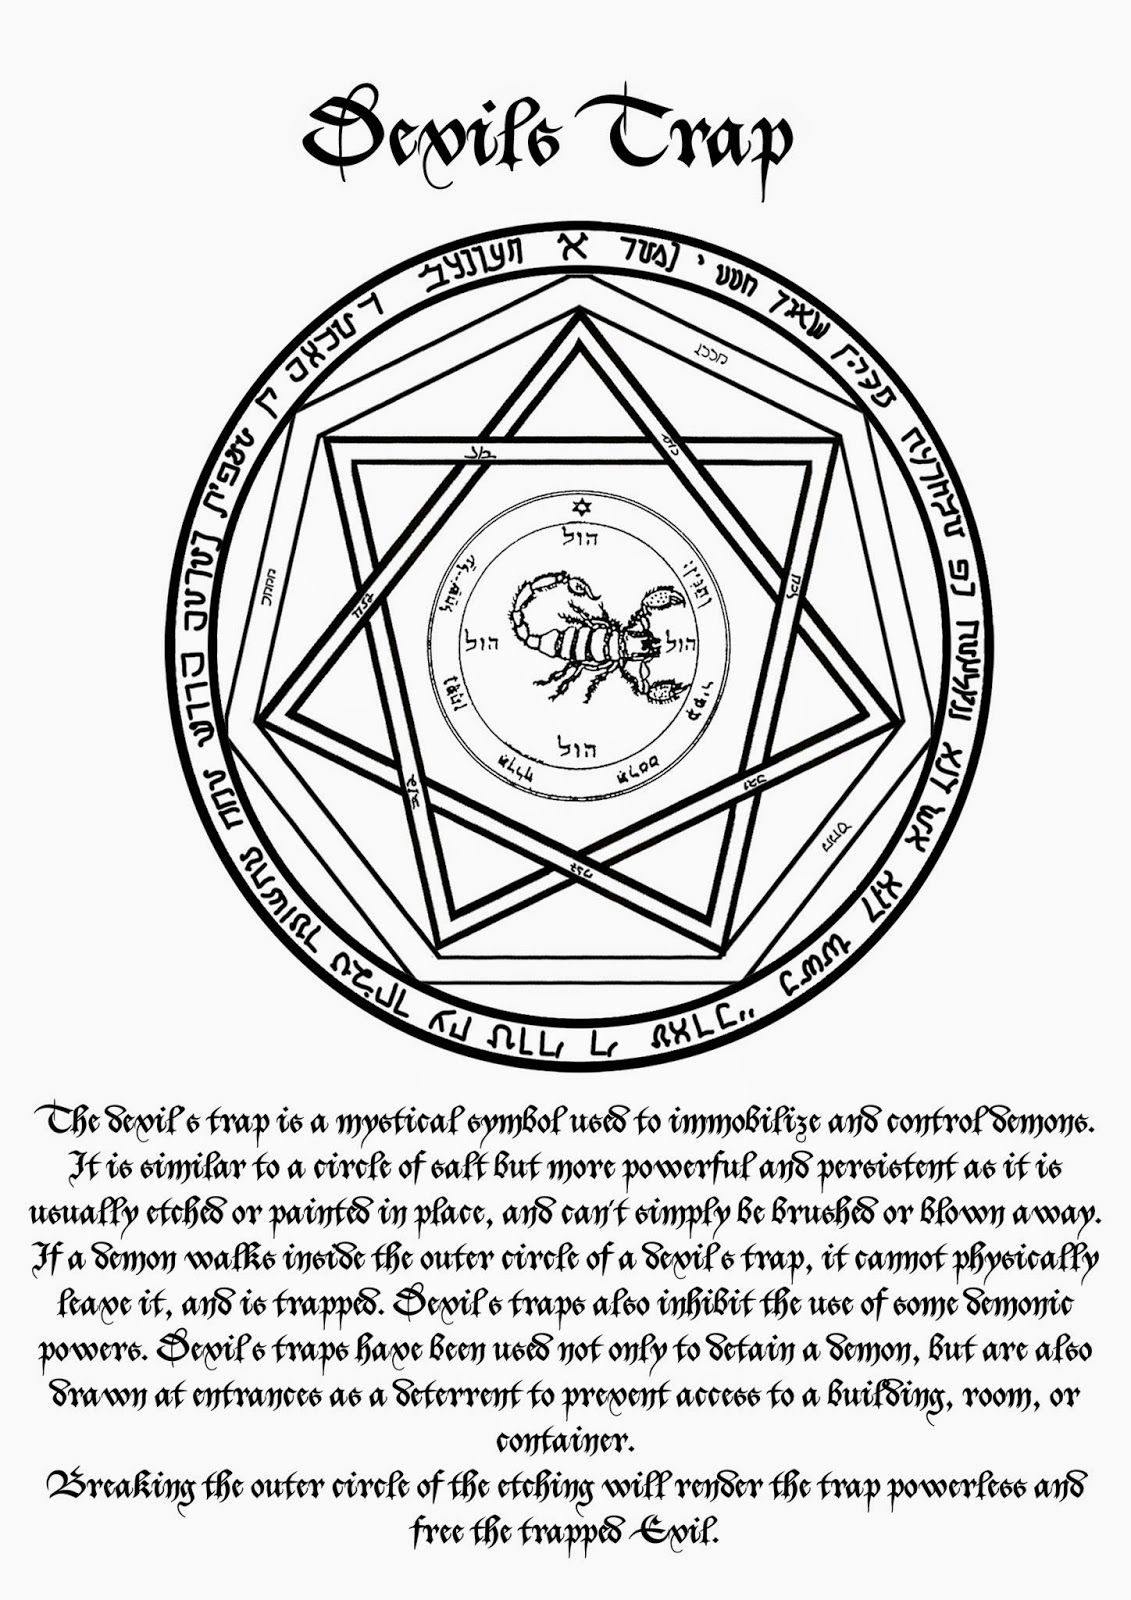 Ceremonial magick ceremonial magick devils trap spells more powerful then a circle of salt you say biocorpaavc